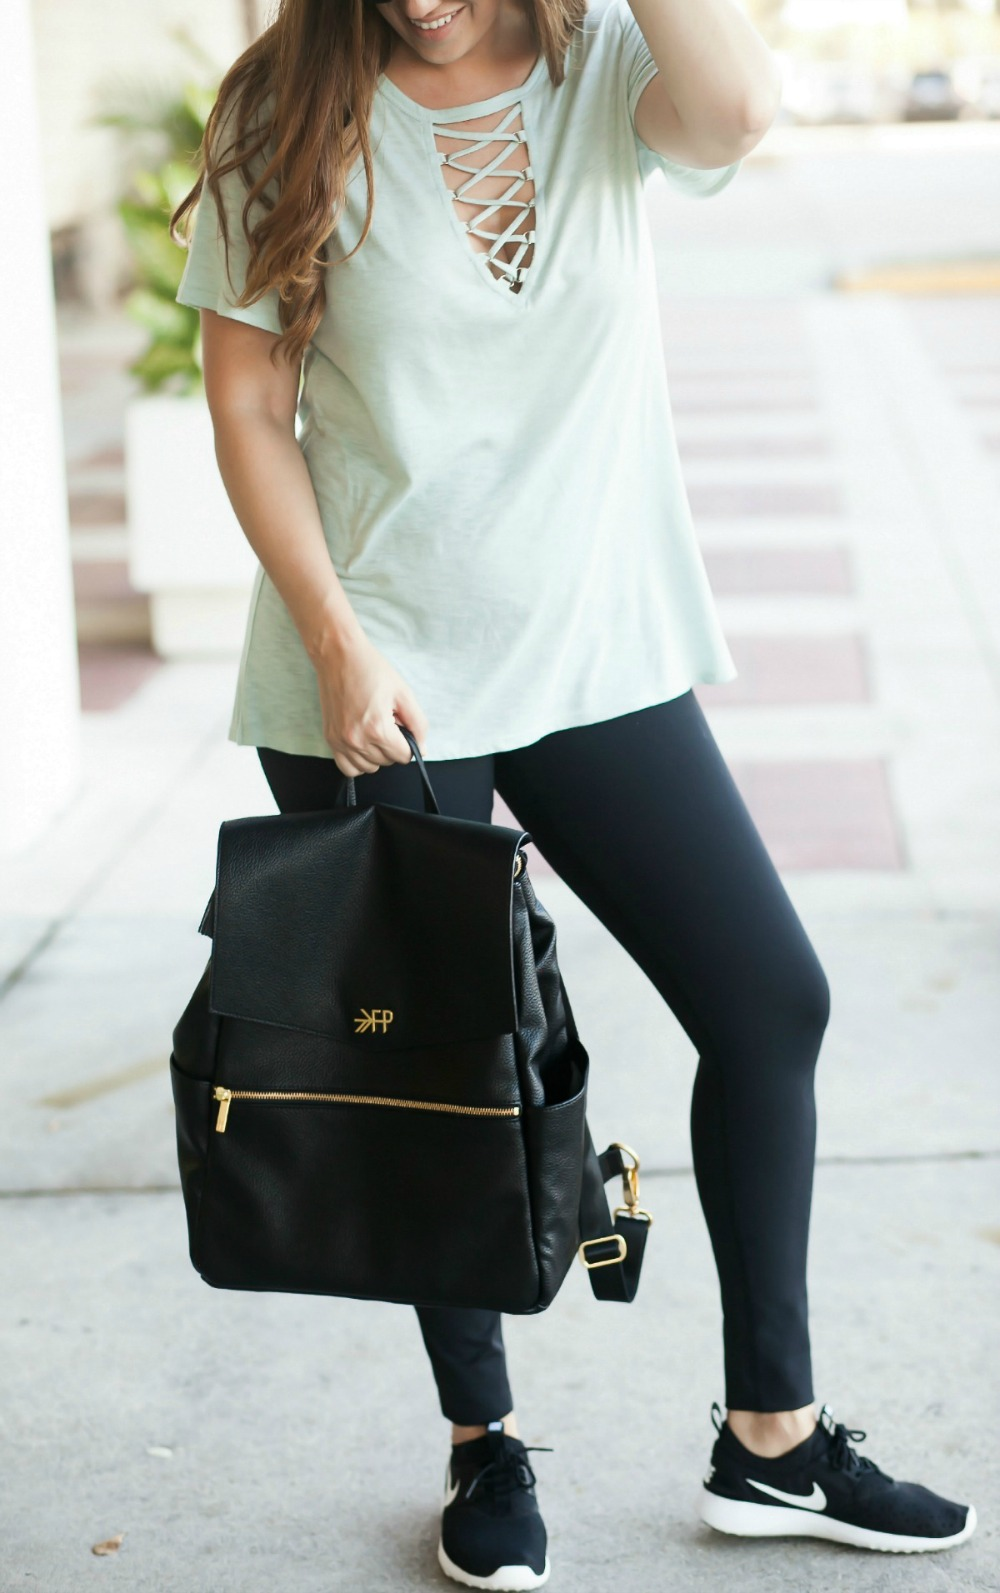 Lace-Up Tee _ Freshly Picked Diaper Bag _ High Waist Leggings